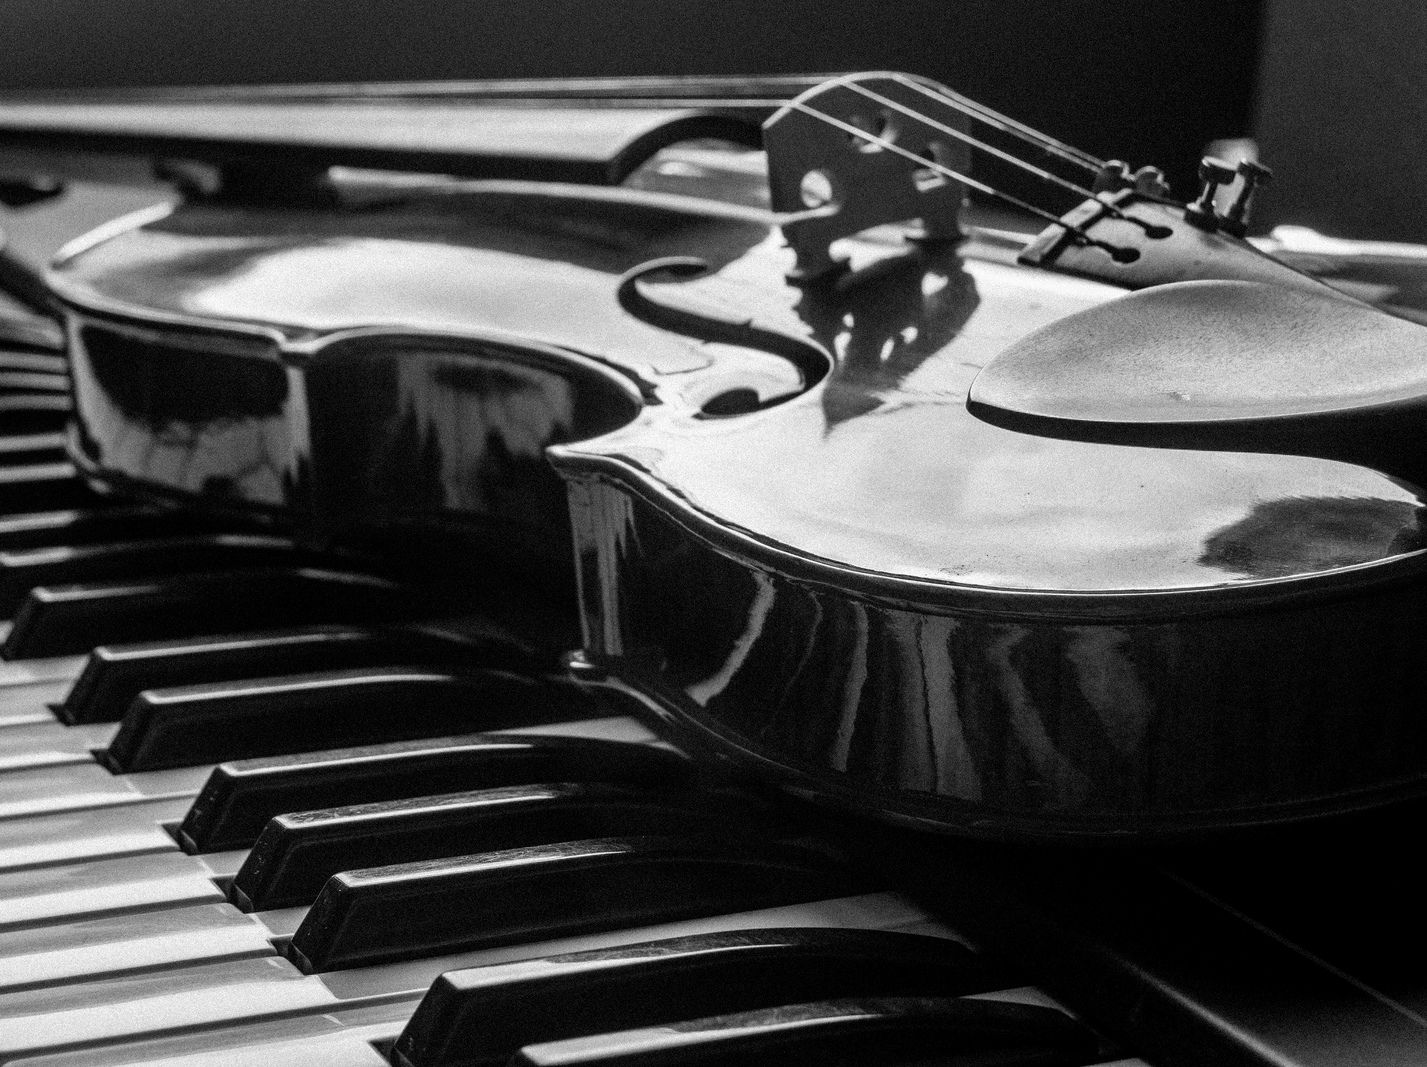 piano and violin black and white photography magic sounds black and white pinterest. Black Bedroom Furniture Sets. Home Design Ideas